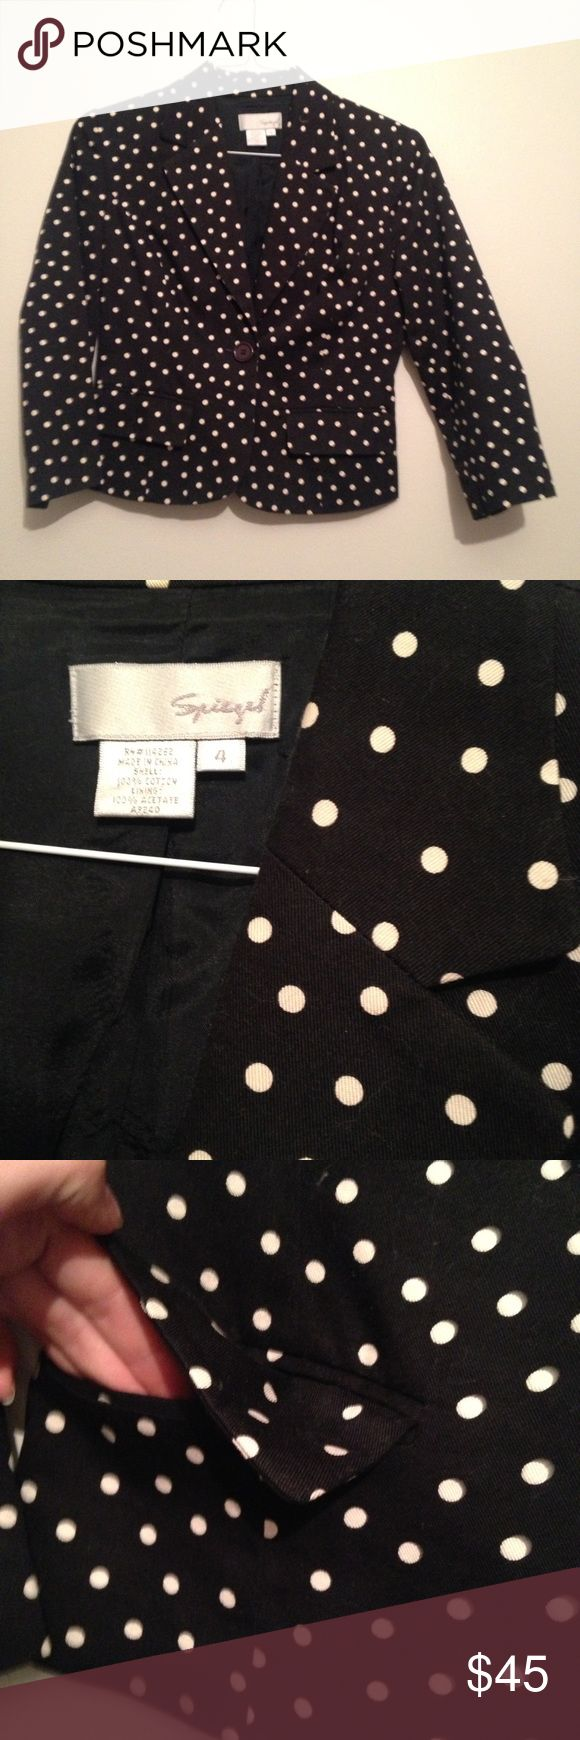 Polka dot blazer black and white 🚛📦Moving Sale = 2️⃣5️⃣% off bundles of 2+ 📦📦  Preppy black and white polka dot blazer.  Size 4. Brand is Spiegel. The black seems to have faded slightly, but otherwise in great condition. Two functional front pockets. Still unsure if I'm ready to part with it... Spiegel Jackets & Coats Blazers